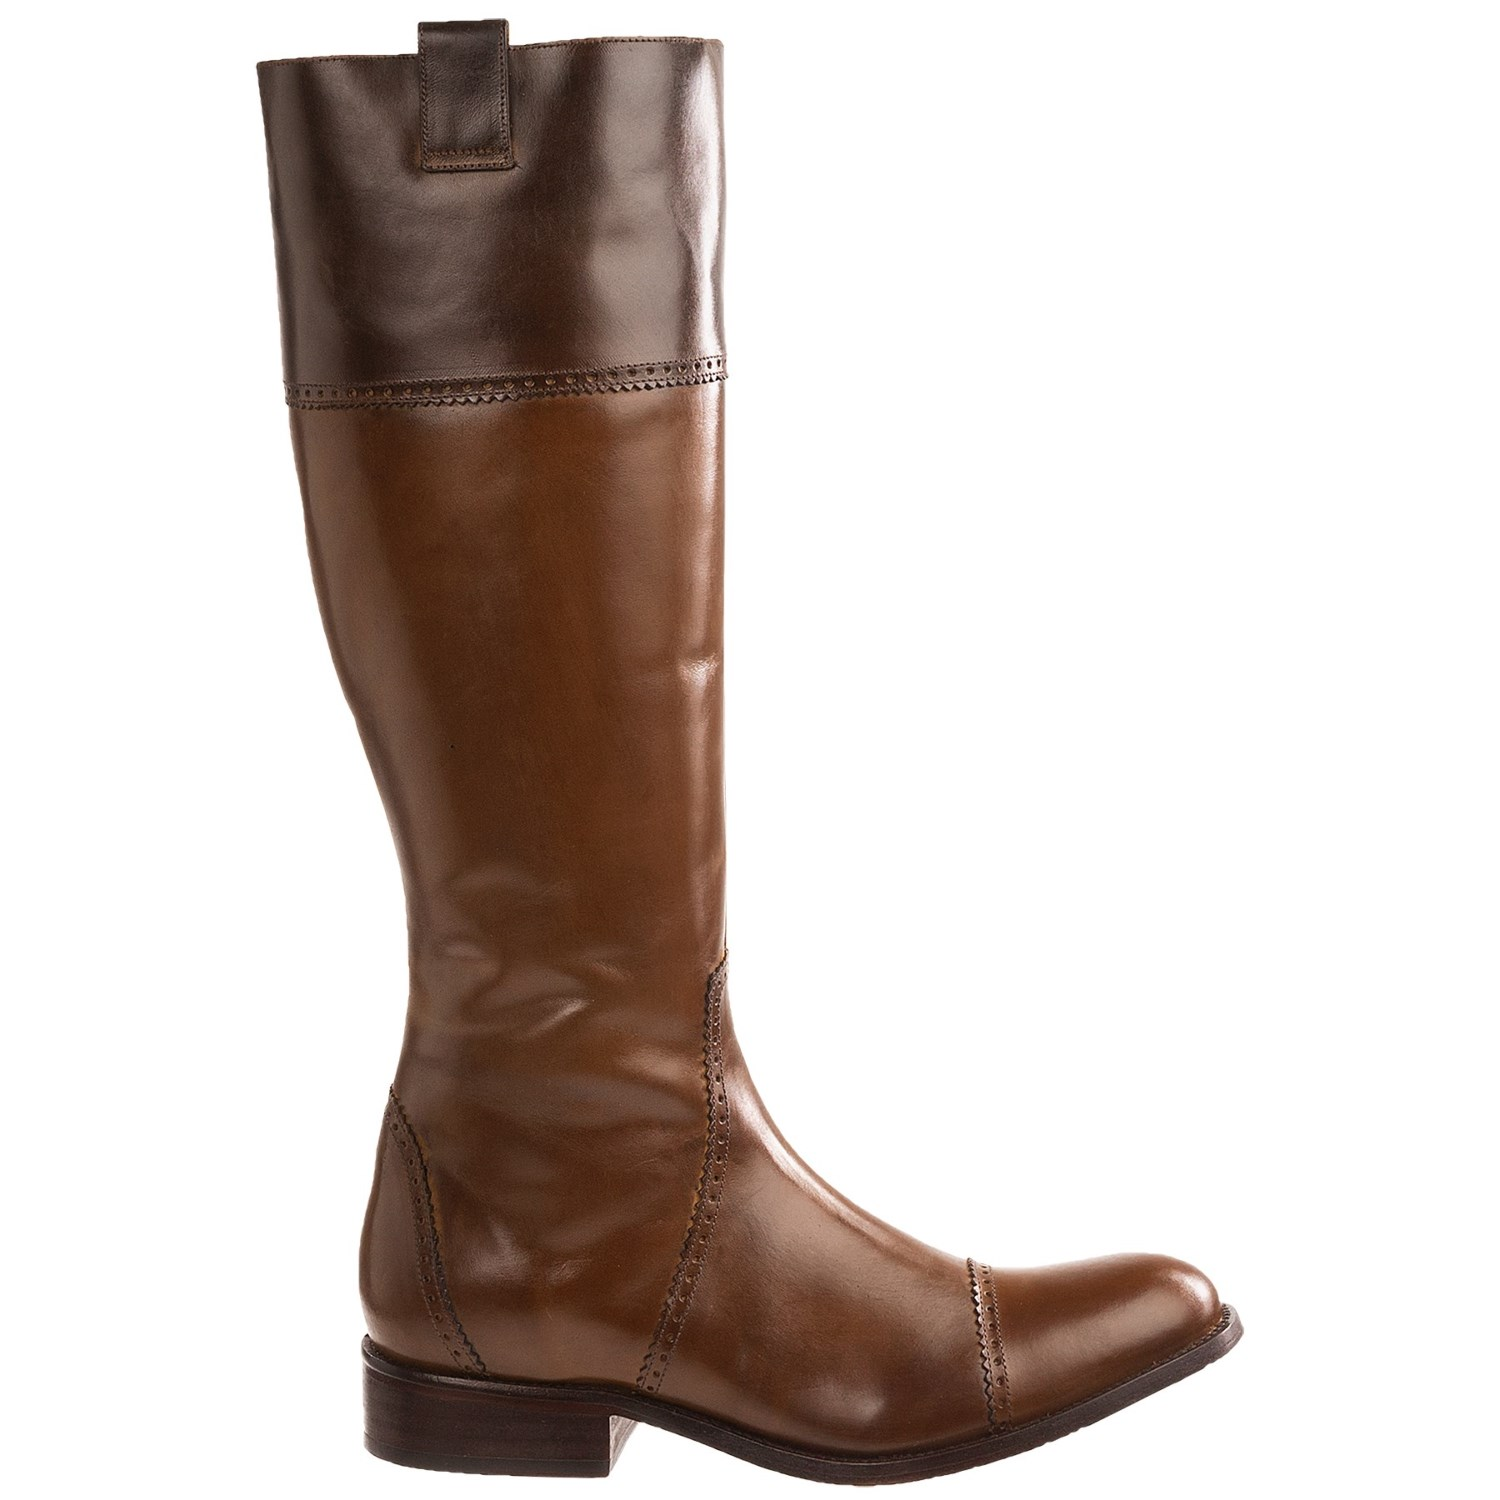 Lucchese Collared English Riding Boots For Women 7185w